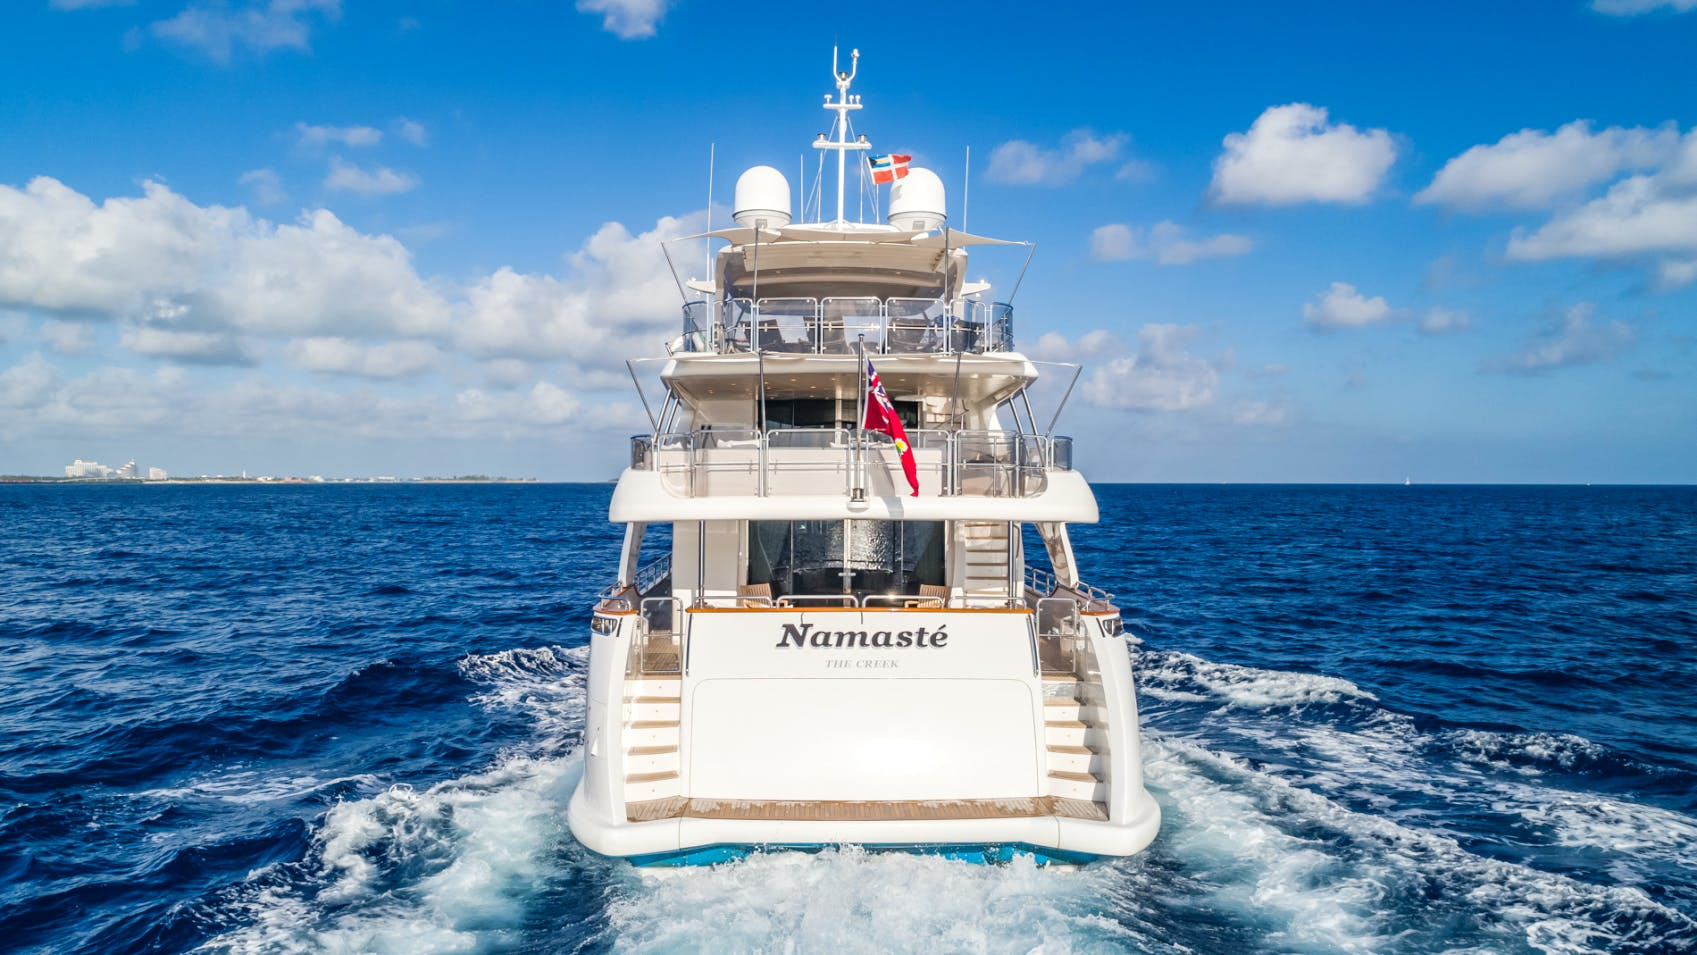 Seasonal Rates for NAMASTE Private Luxury Yacht For Charter